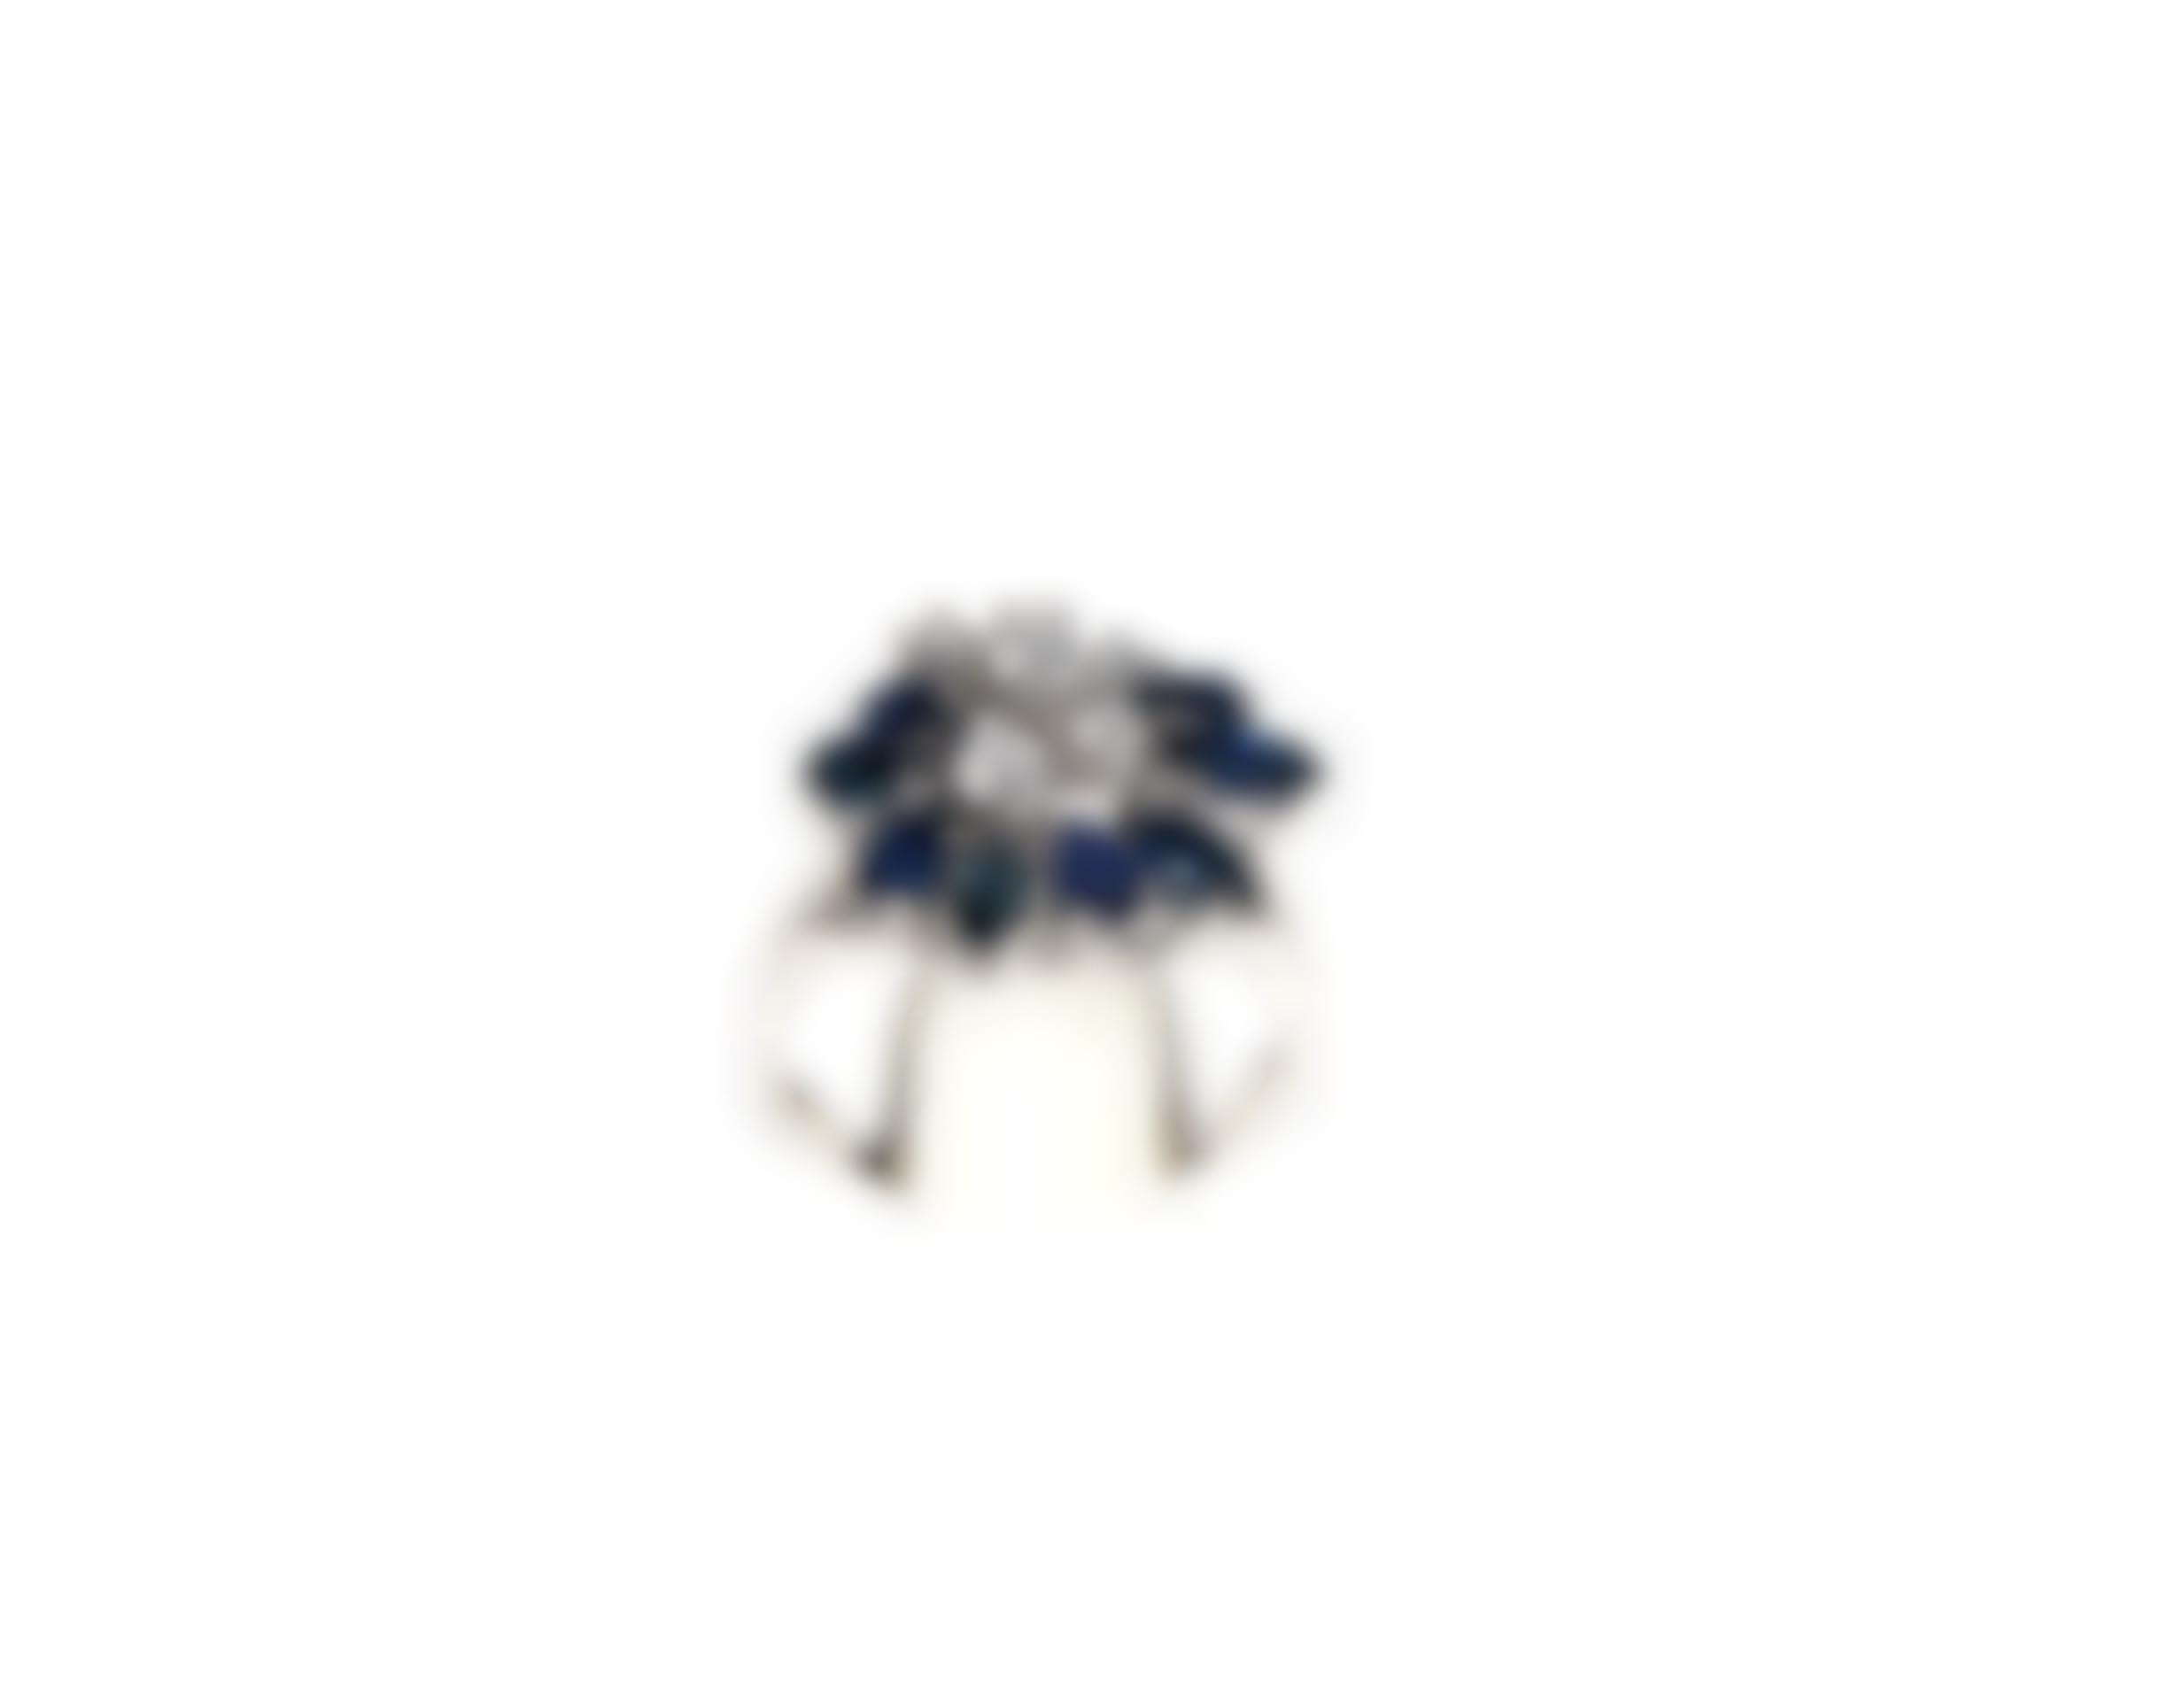 A Gold, Saphire And Diamond Ring-